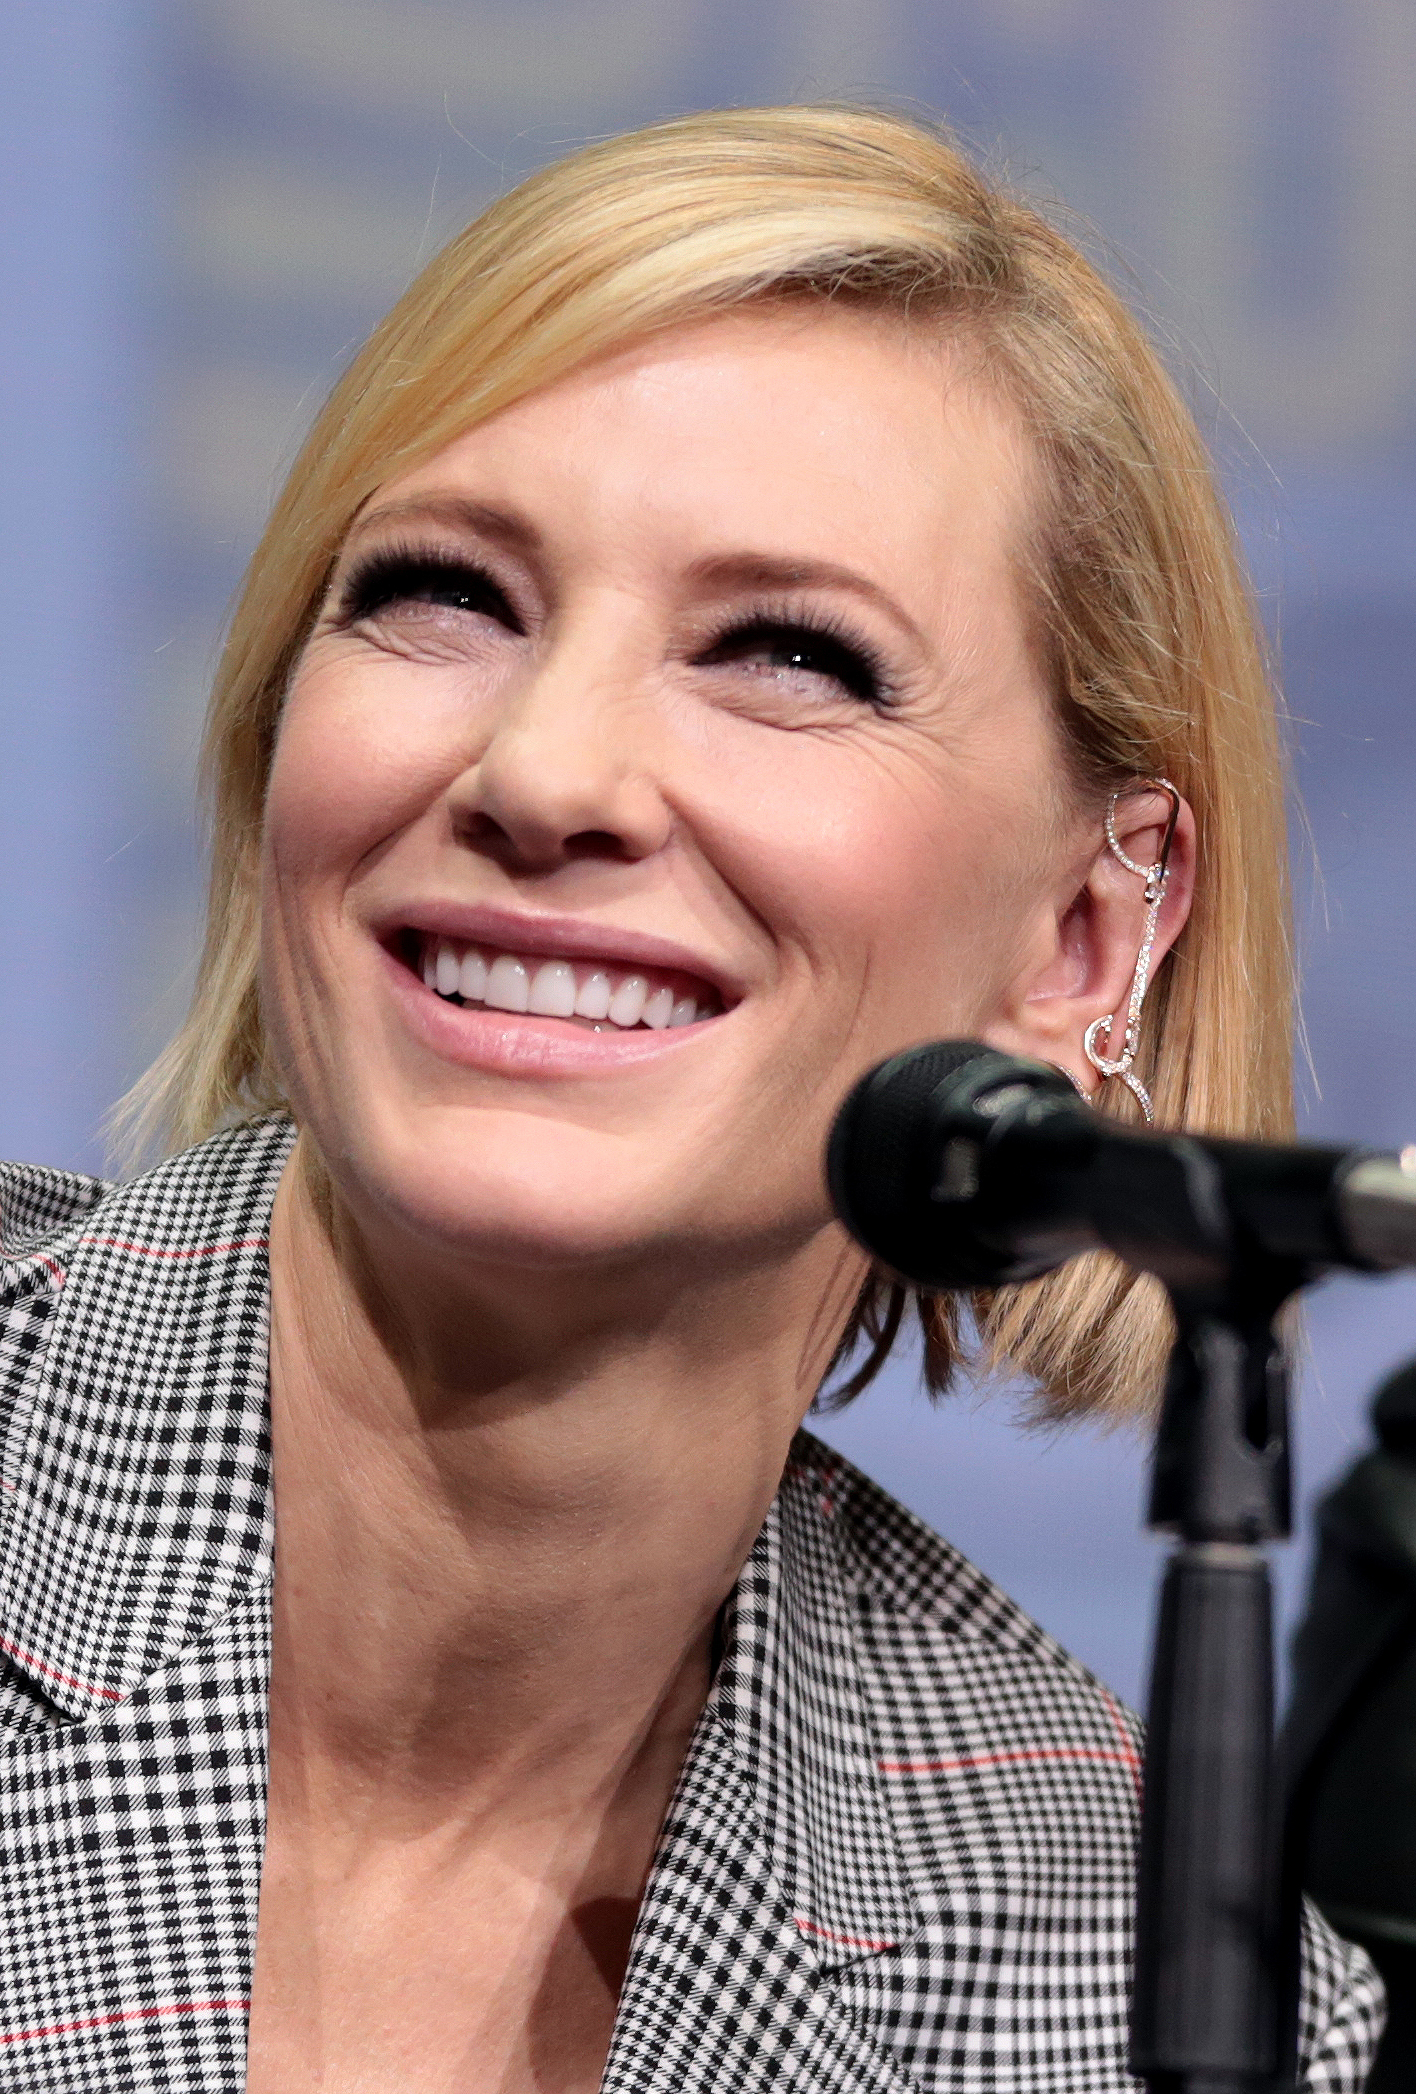 Photos Cate Blanchett nudes (84 photos), Tits, Cleavage, Feet, braless 2015